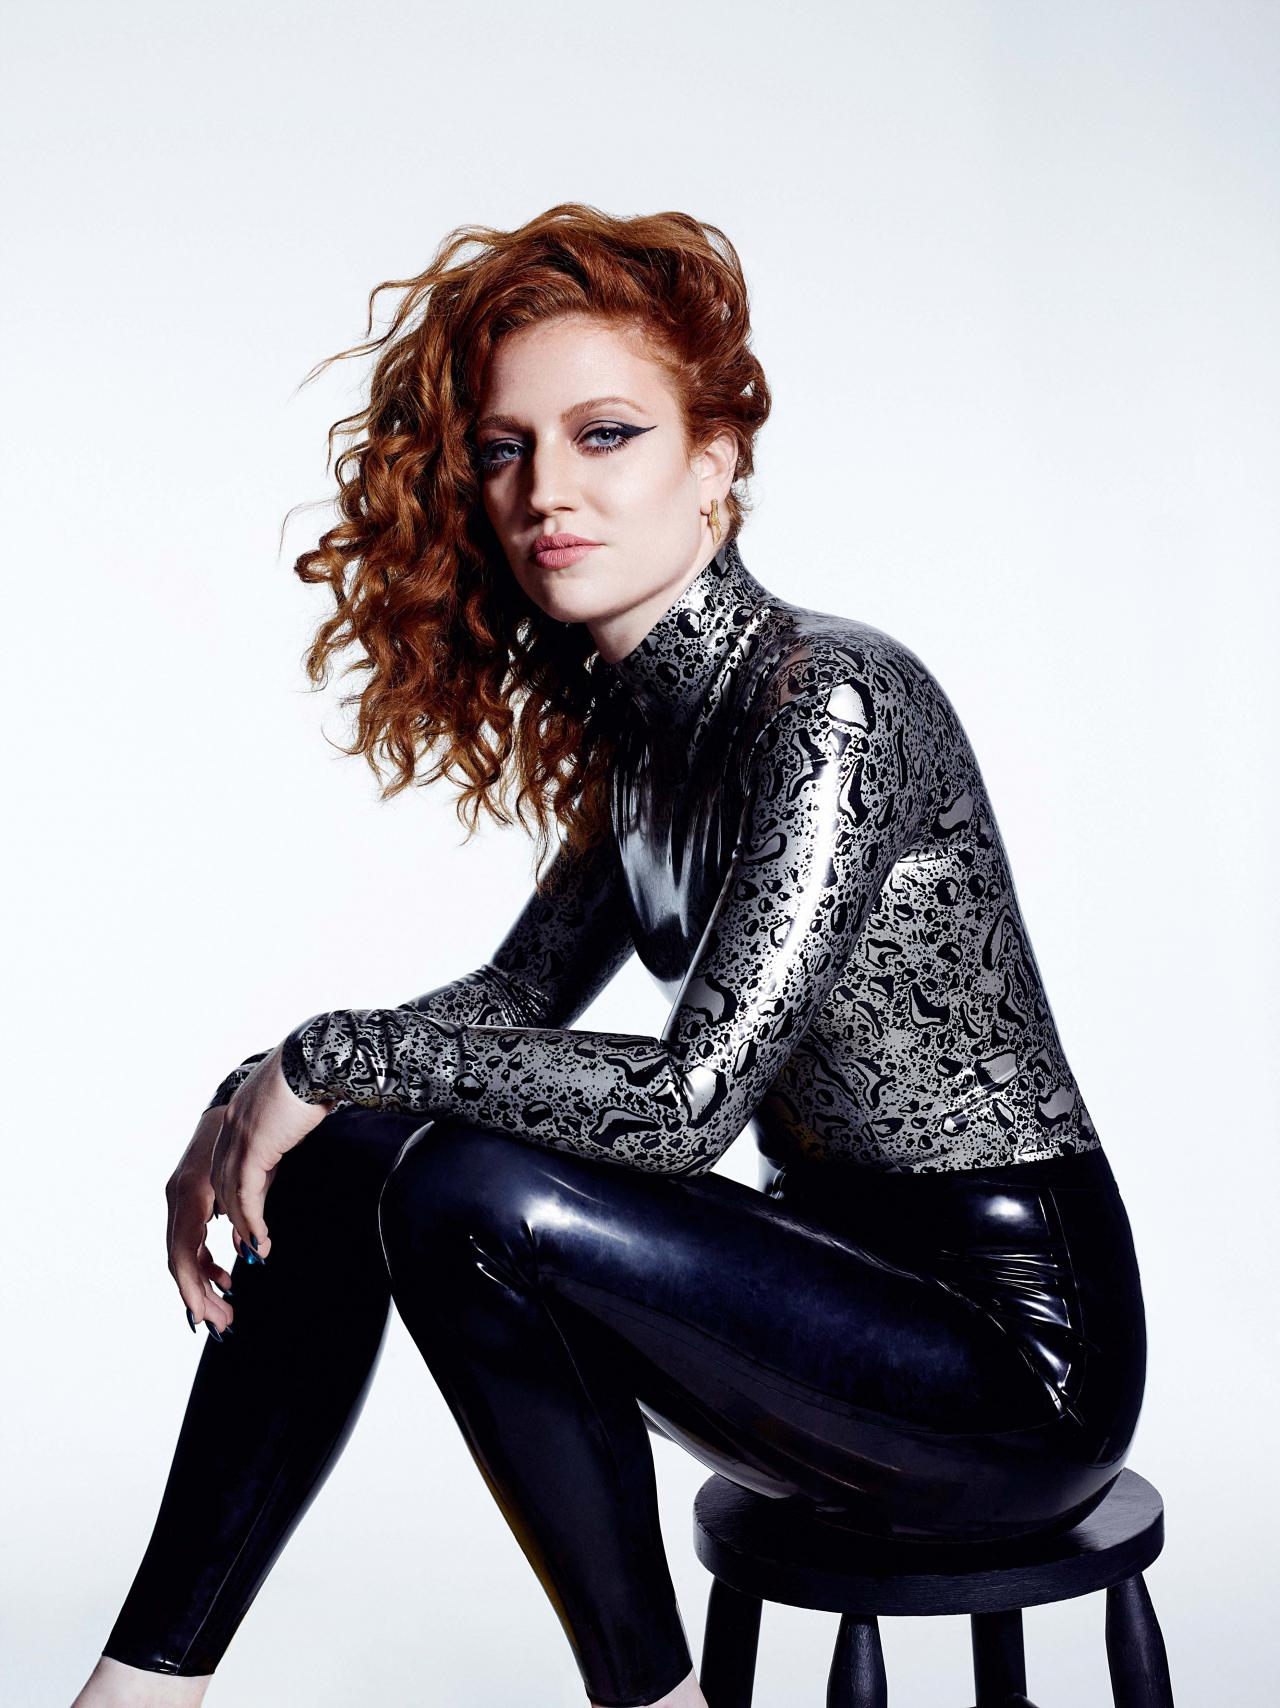 jess glynne latex